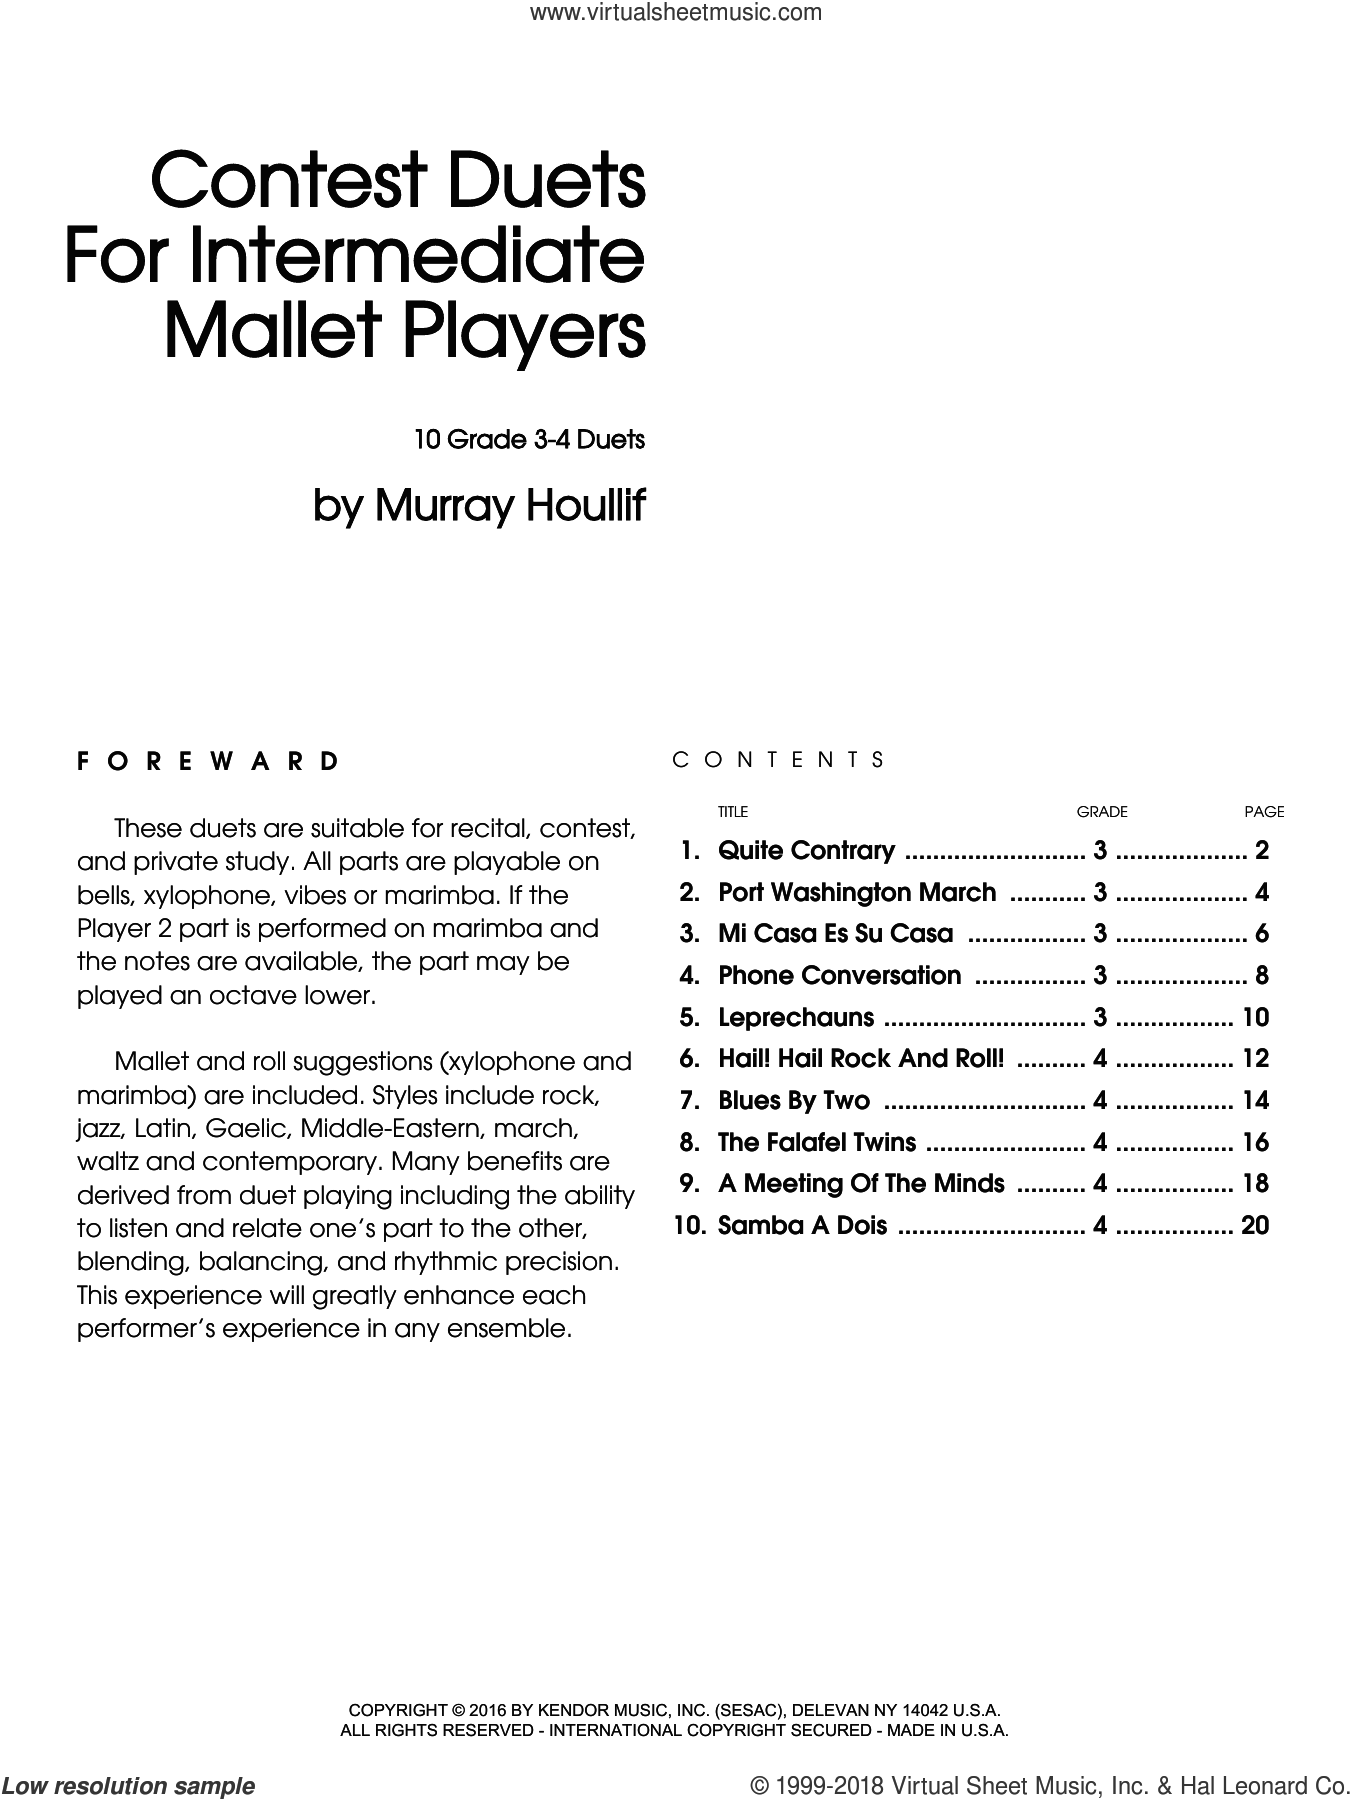 Contest Duets For Intermediate Mallet Players sheet music for percussions by Houllif. Score Image Preview.